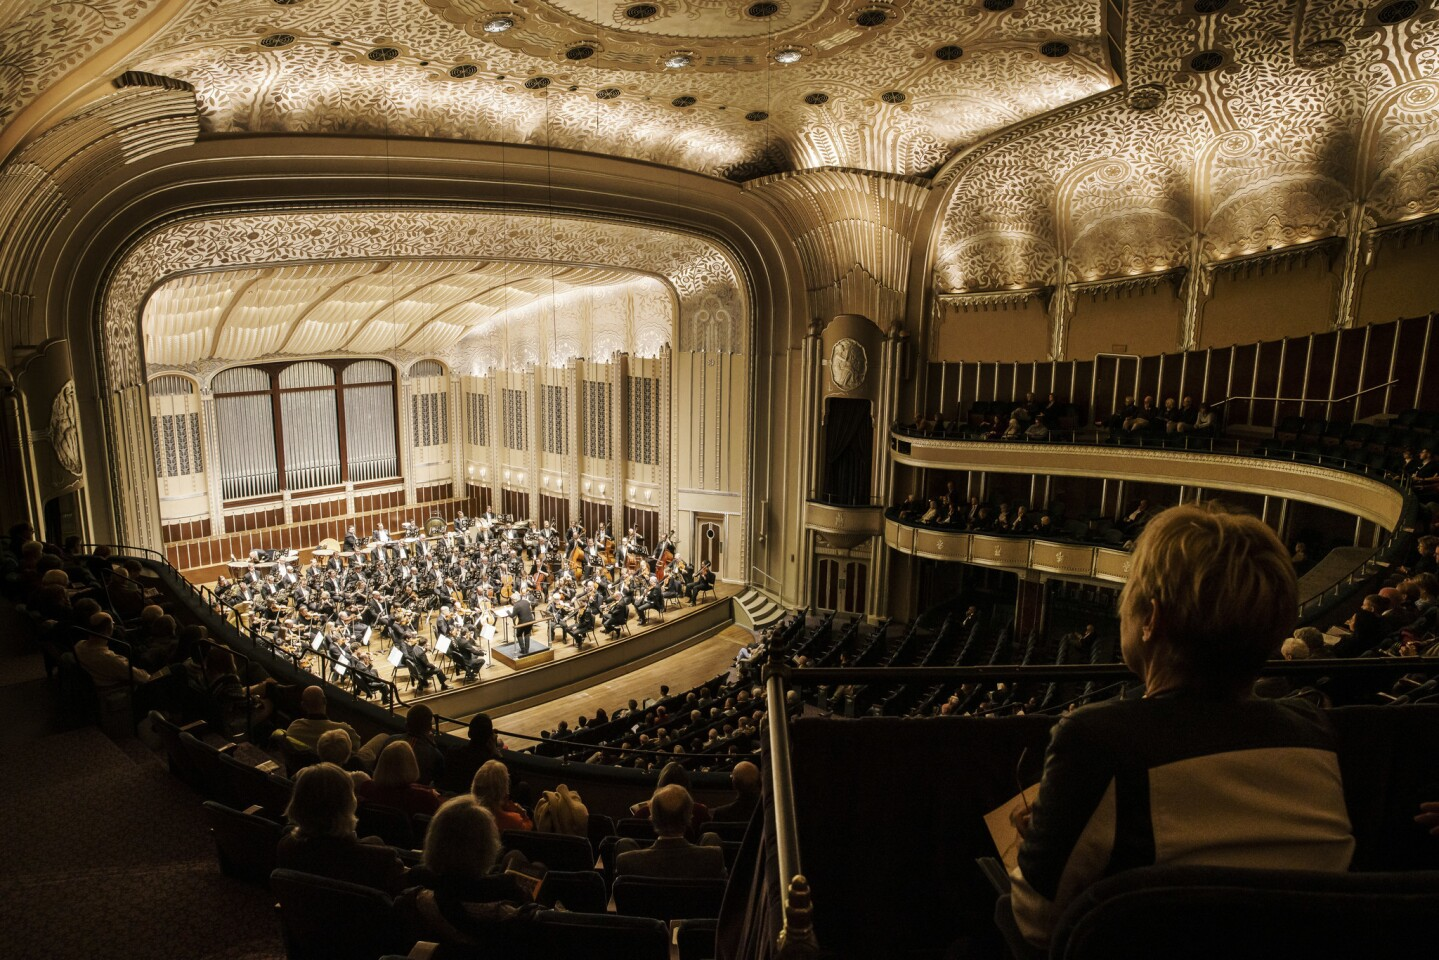 Severance Hall is the home of the world-class Cleveland Orchestra, conducted here by Ingo Metzmacher in an October concert.